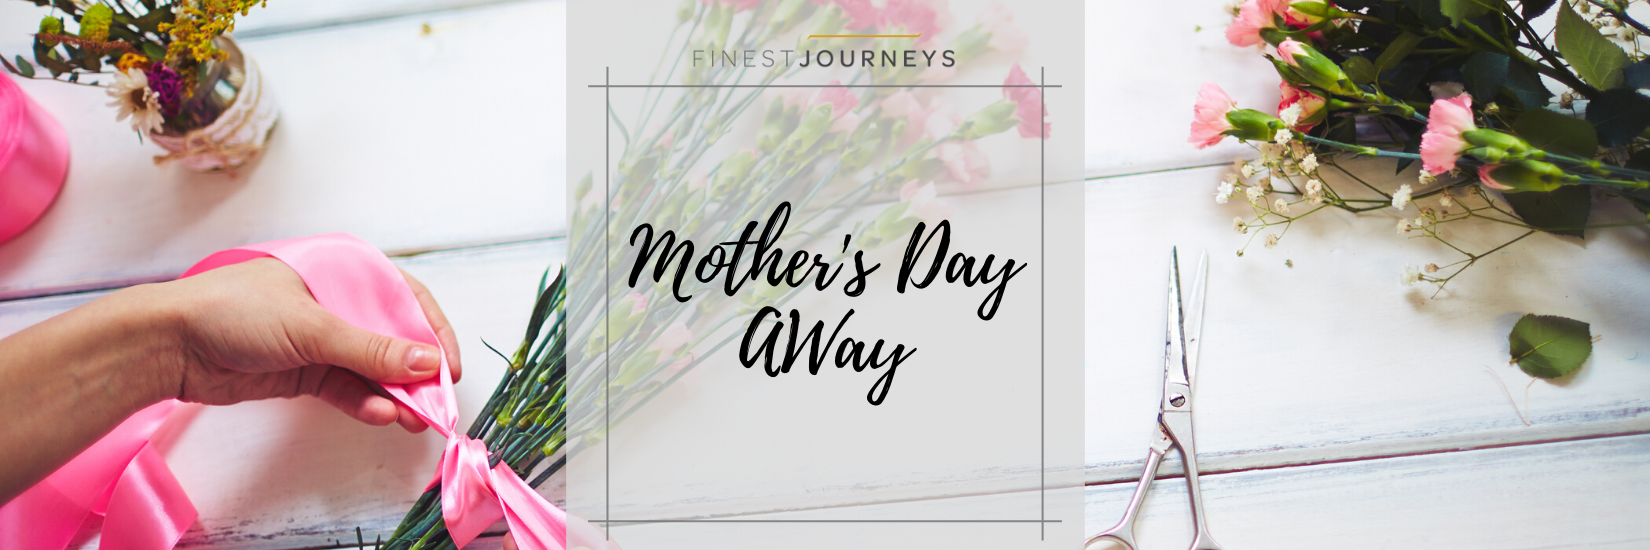 IMG : Mother's Day AWay